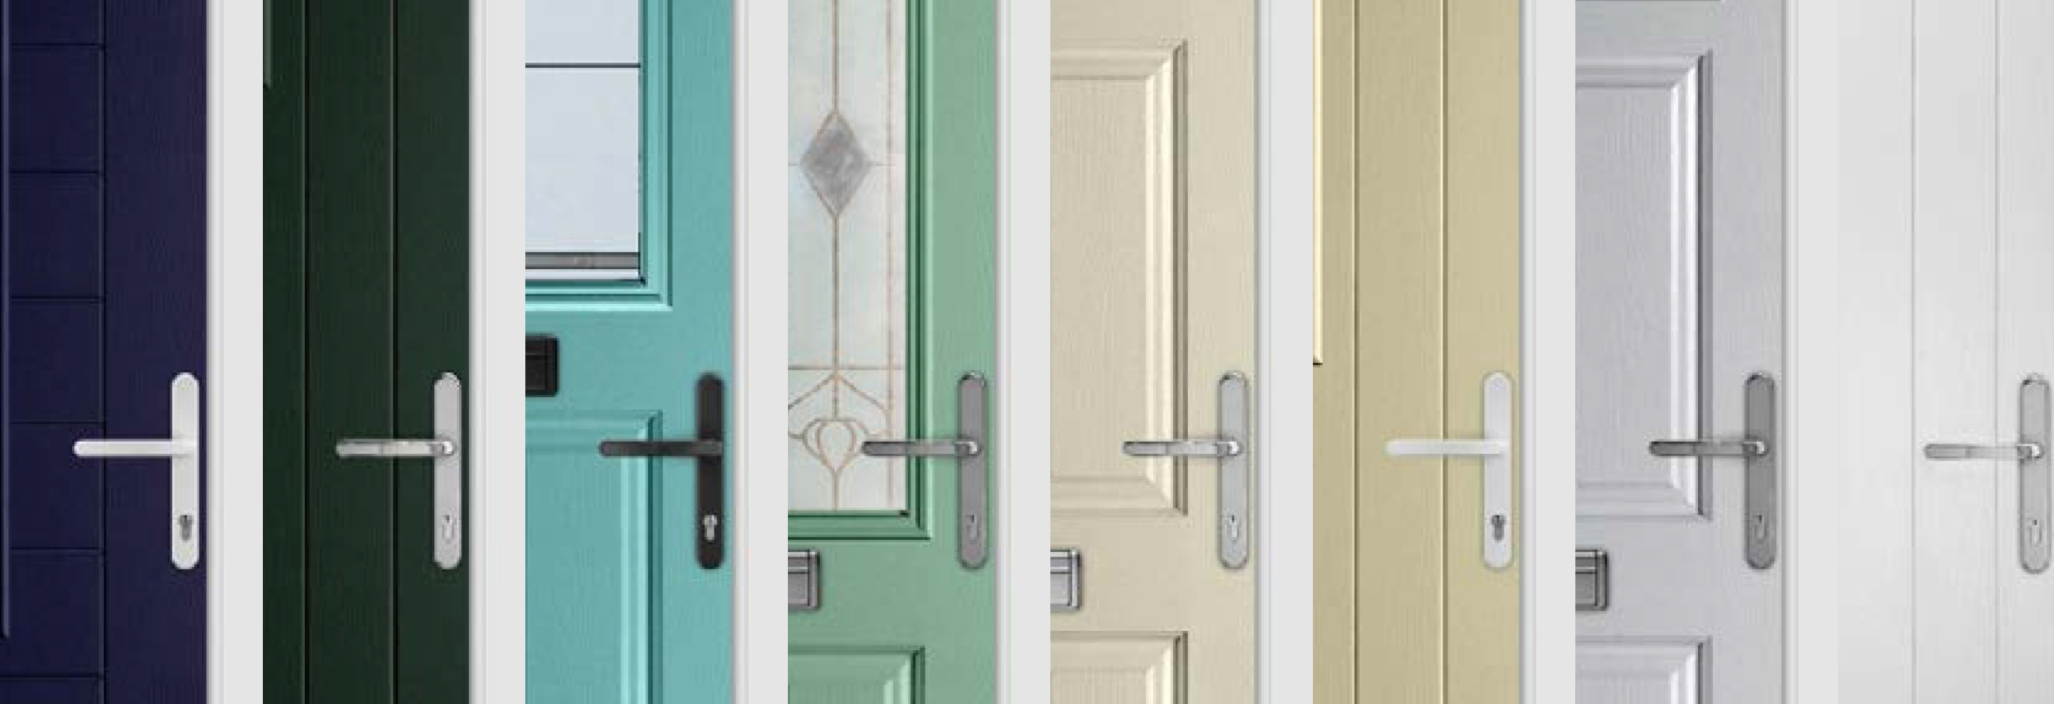 Headway Endurance Doors Offer